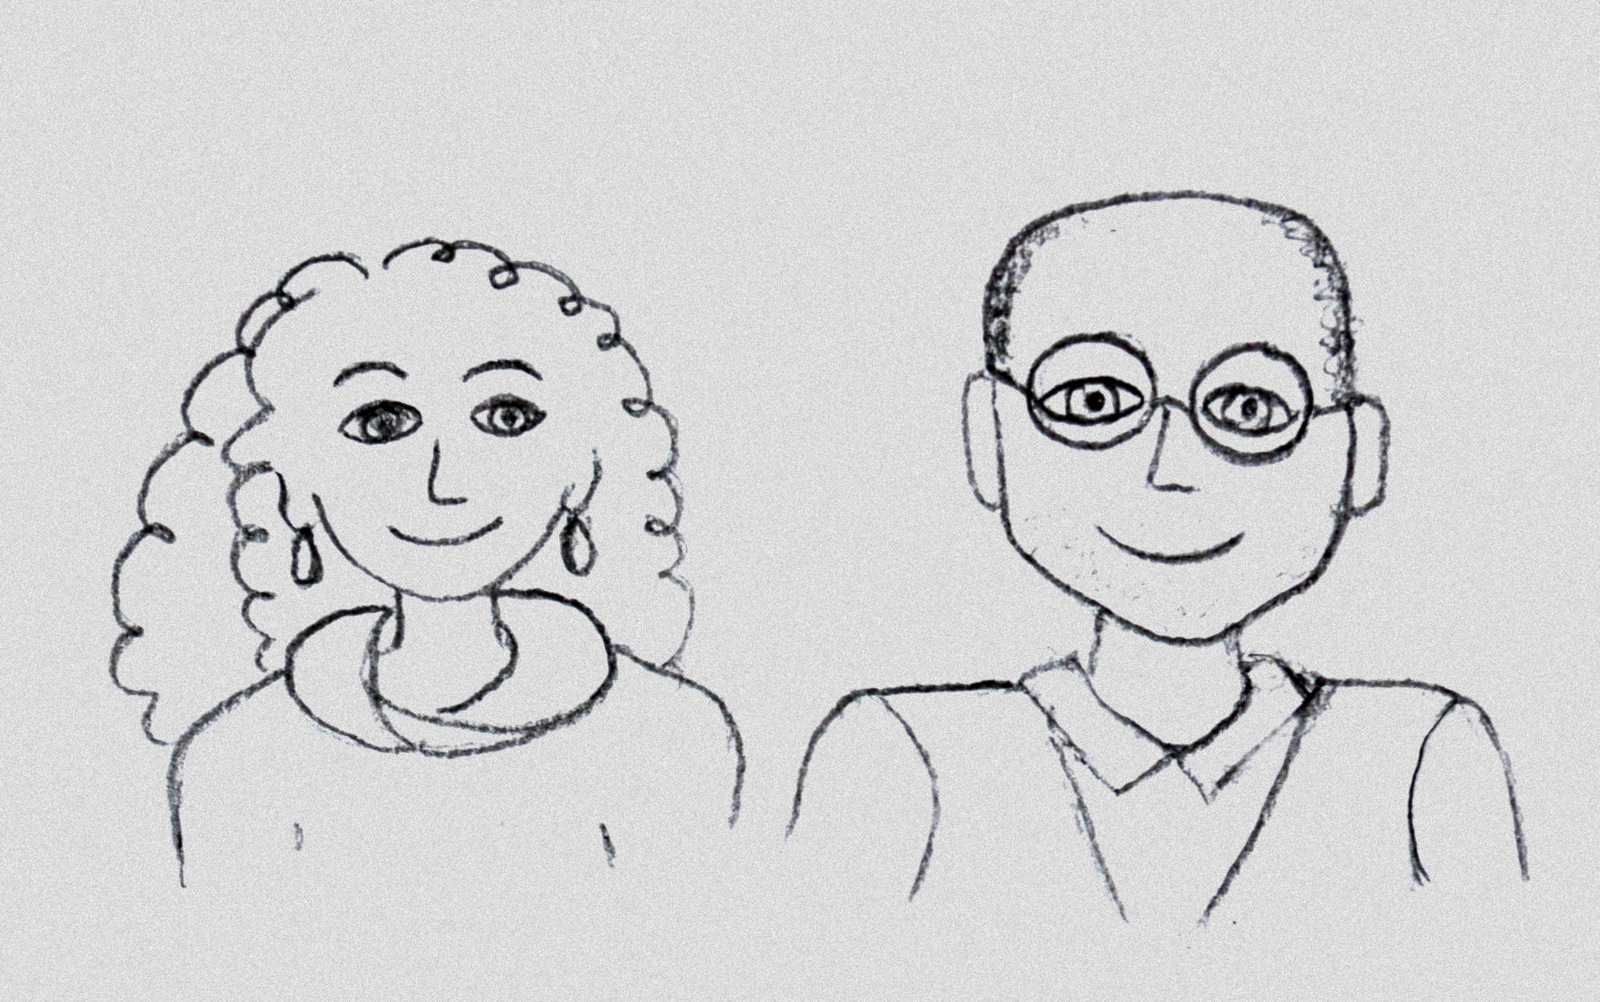 Veronica's illustrated version of our welcoming hosts Anne and Jérôme